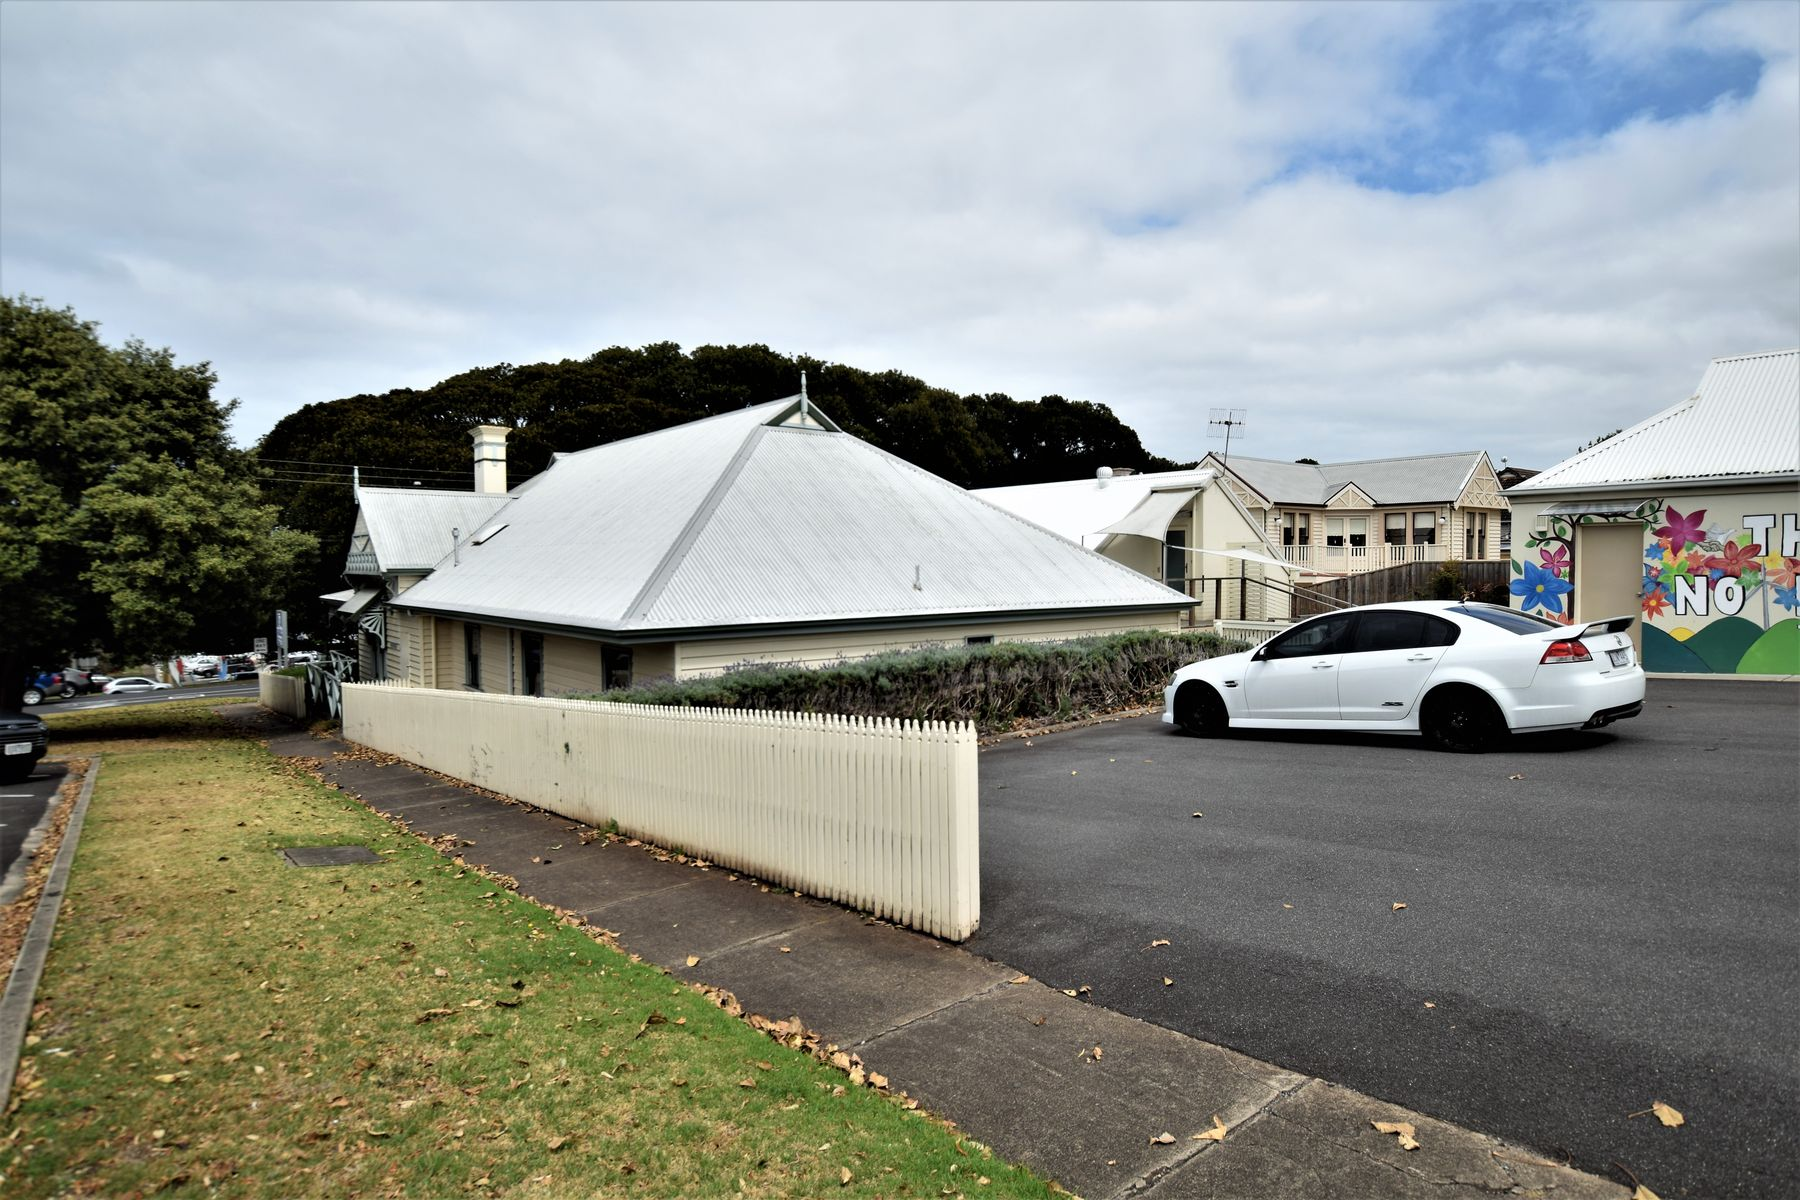 484 Raglan Parade, Warrnambool, VIC 3280